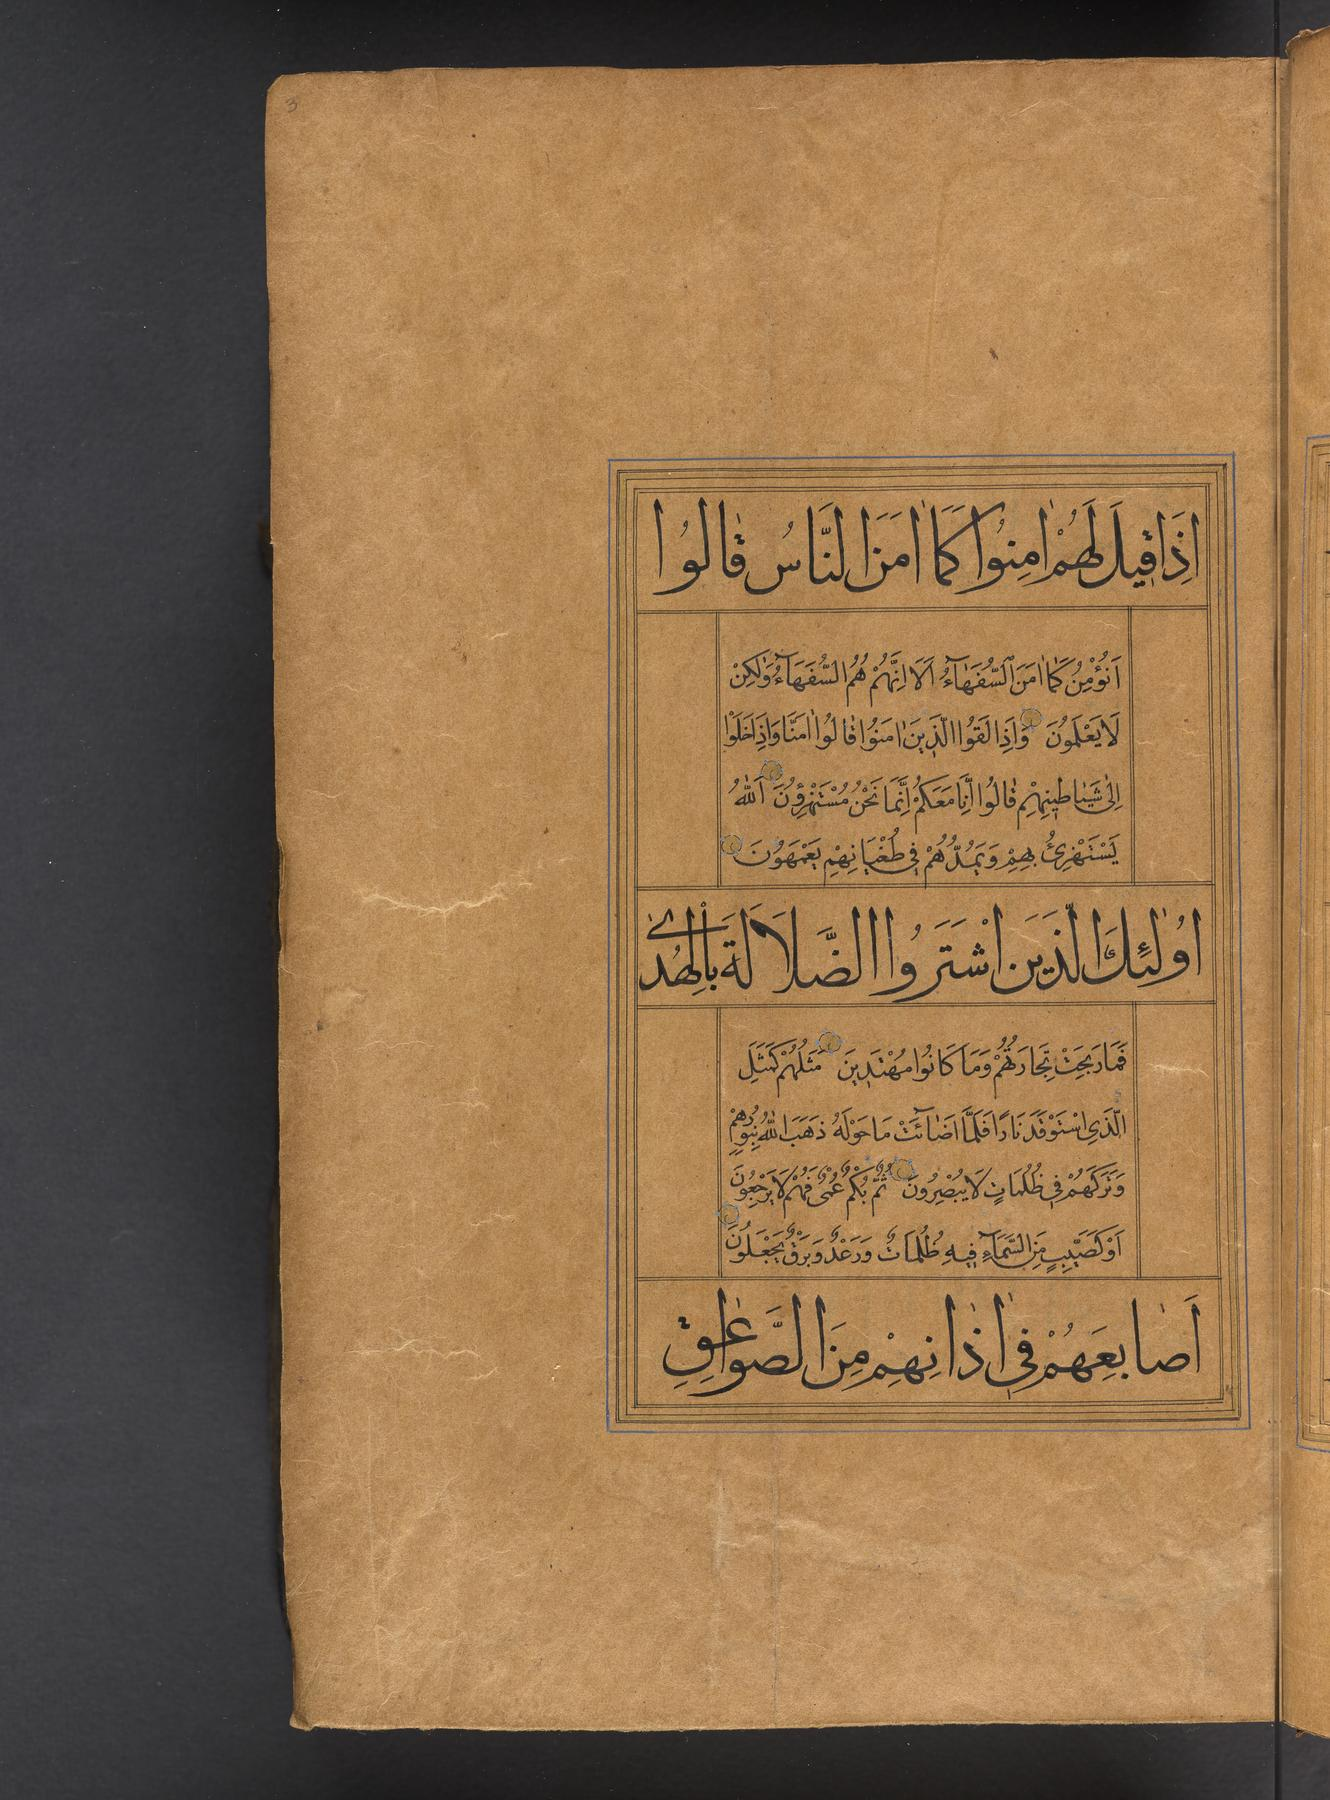 page from the Qur'an with all vocalizataions